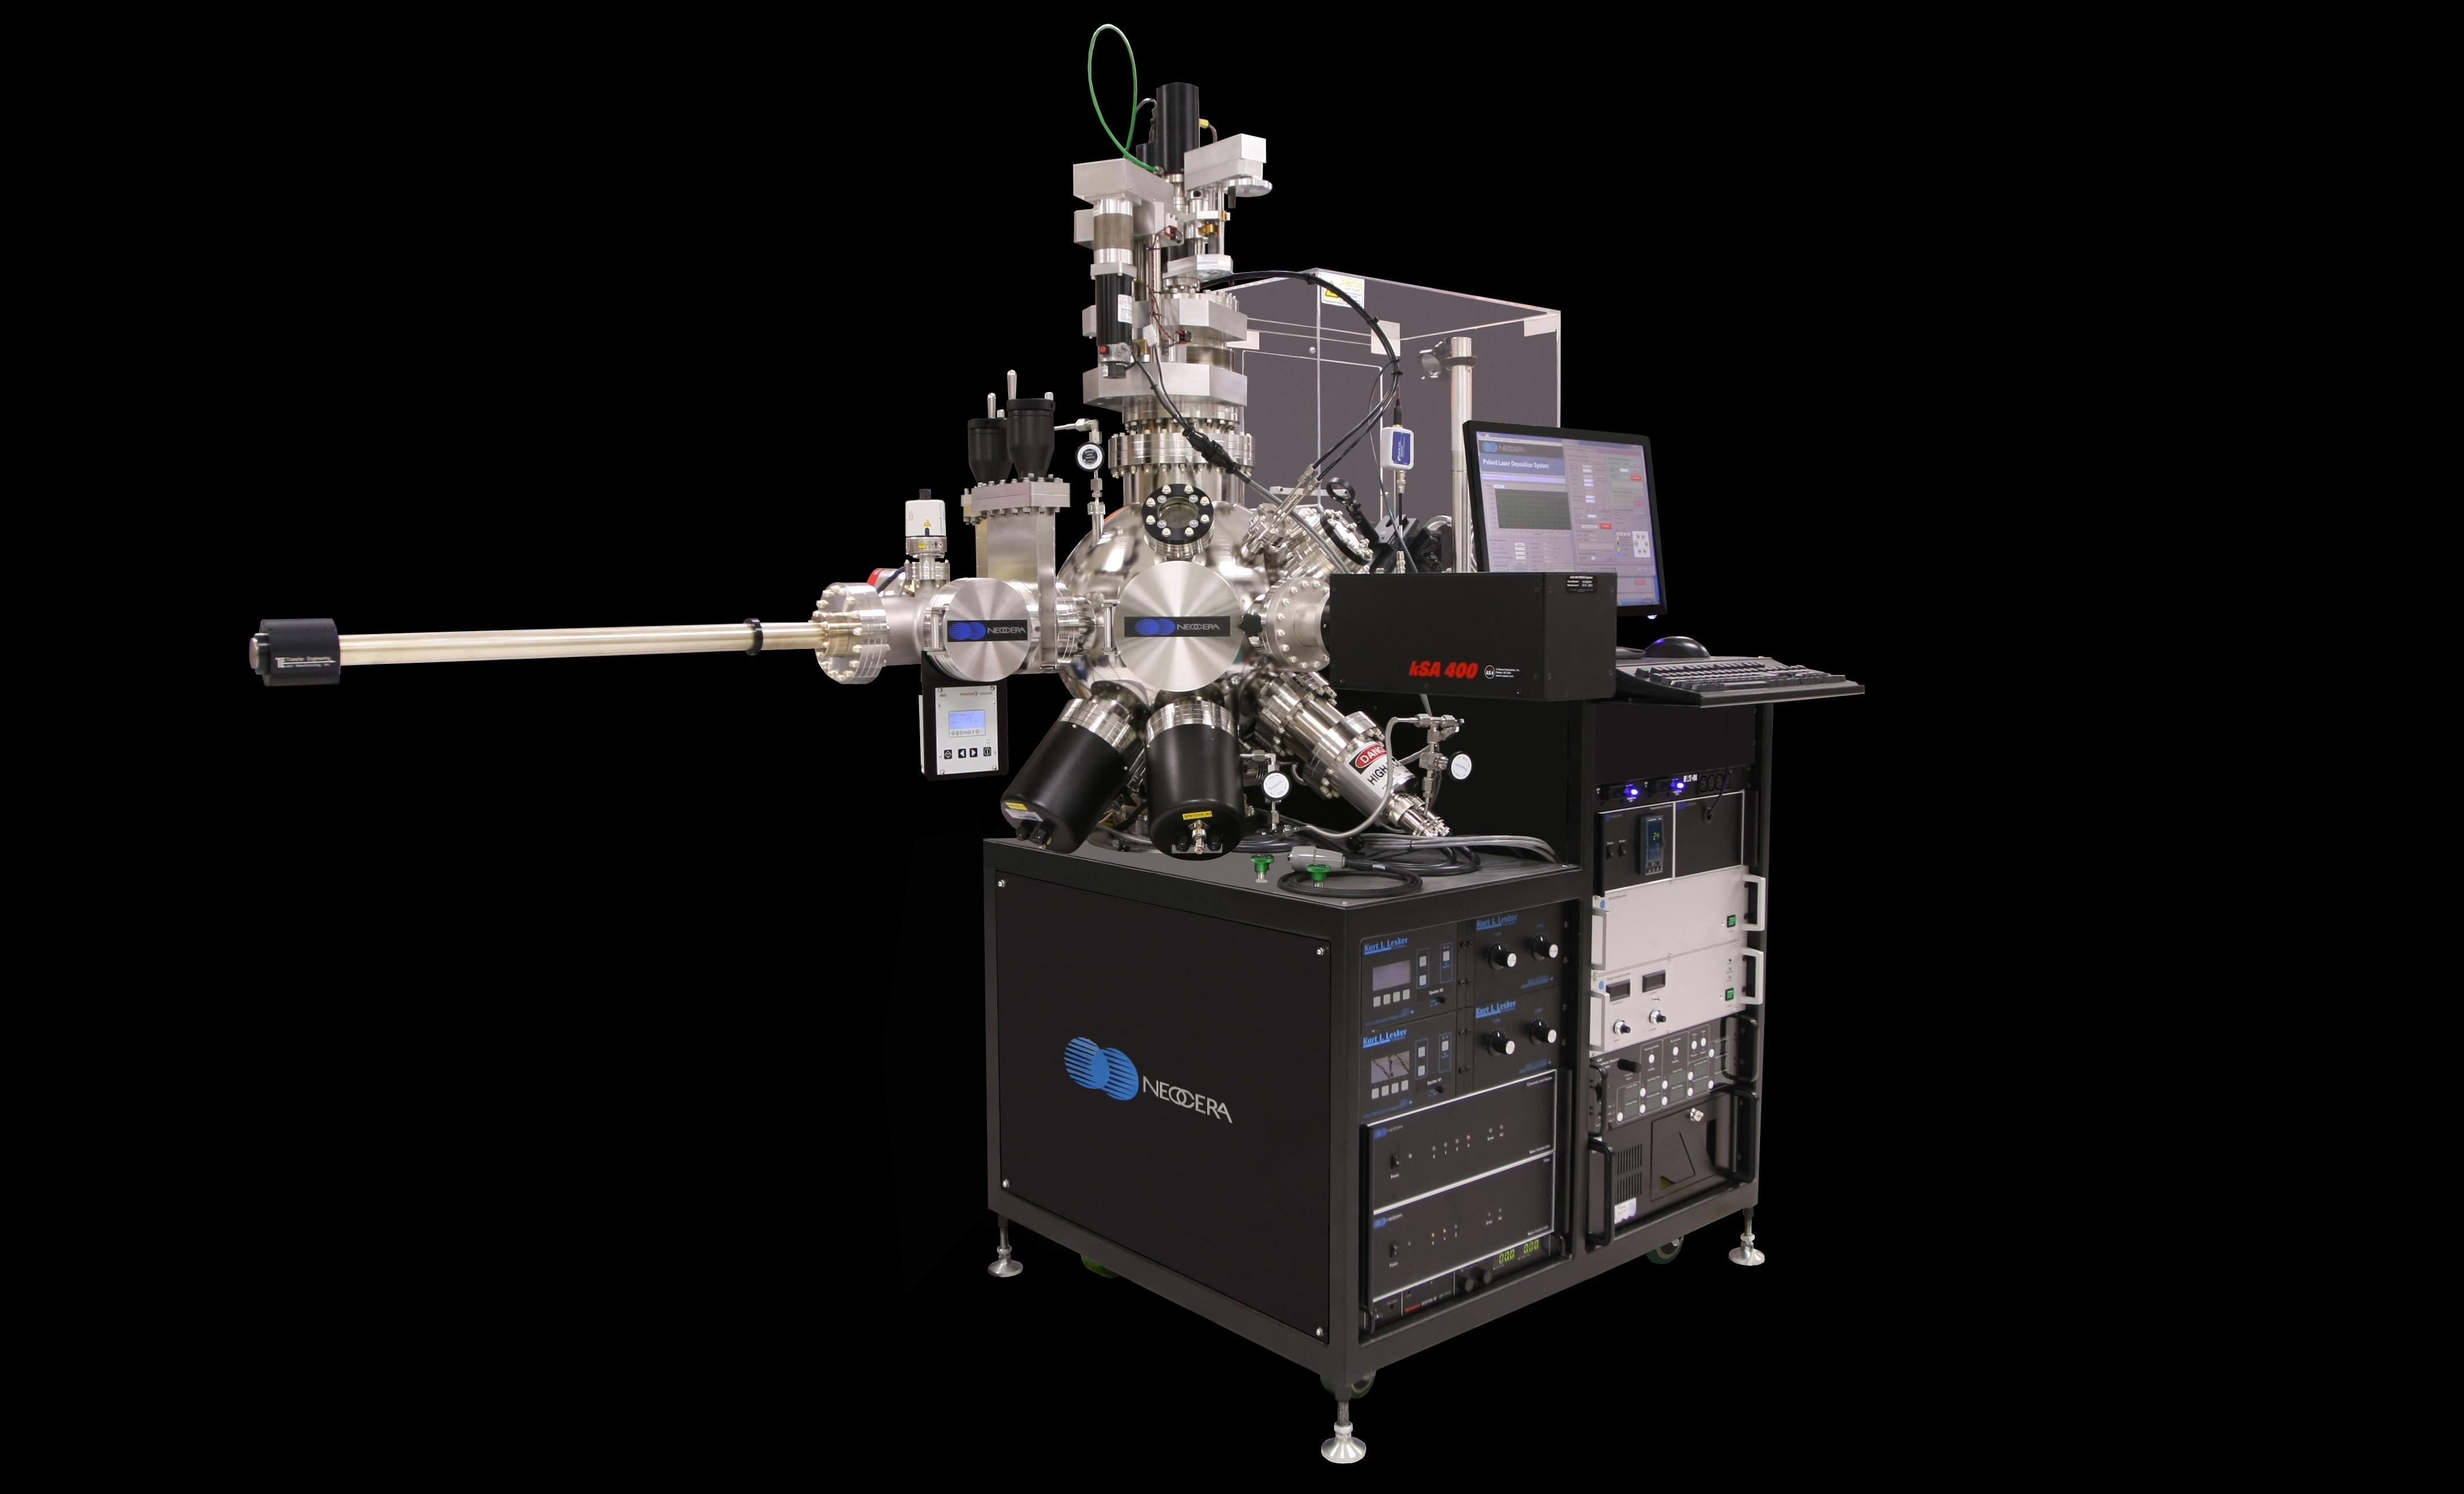 P180 Laser MBE System with RF sputter and DC Ion source - main image